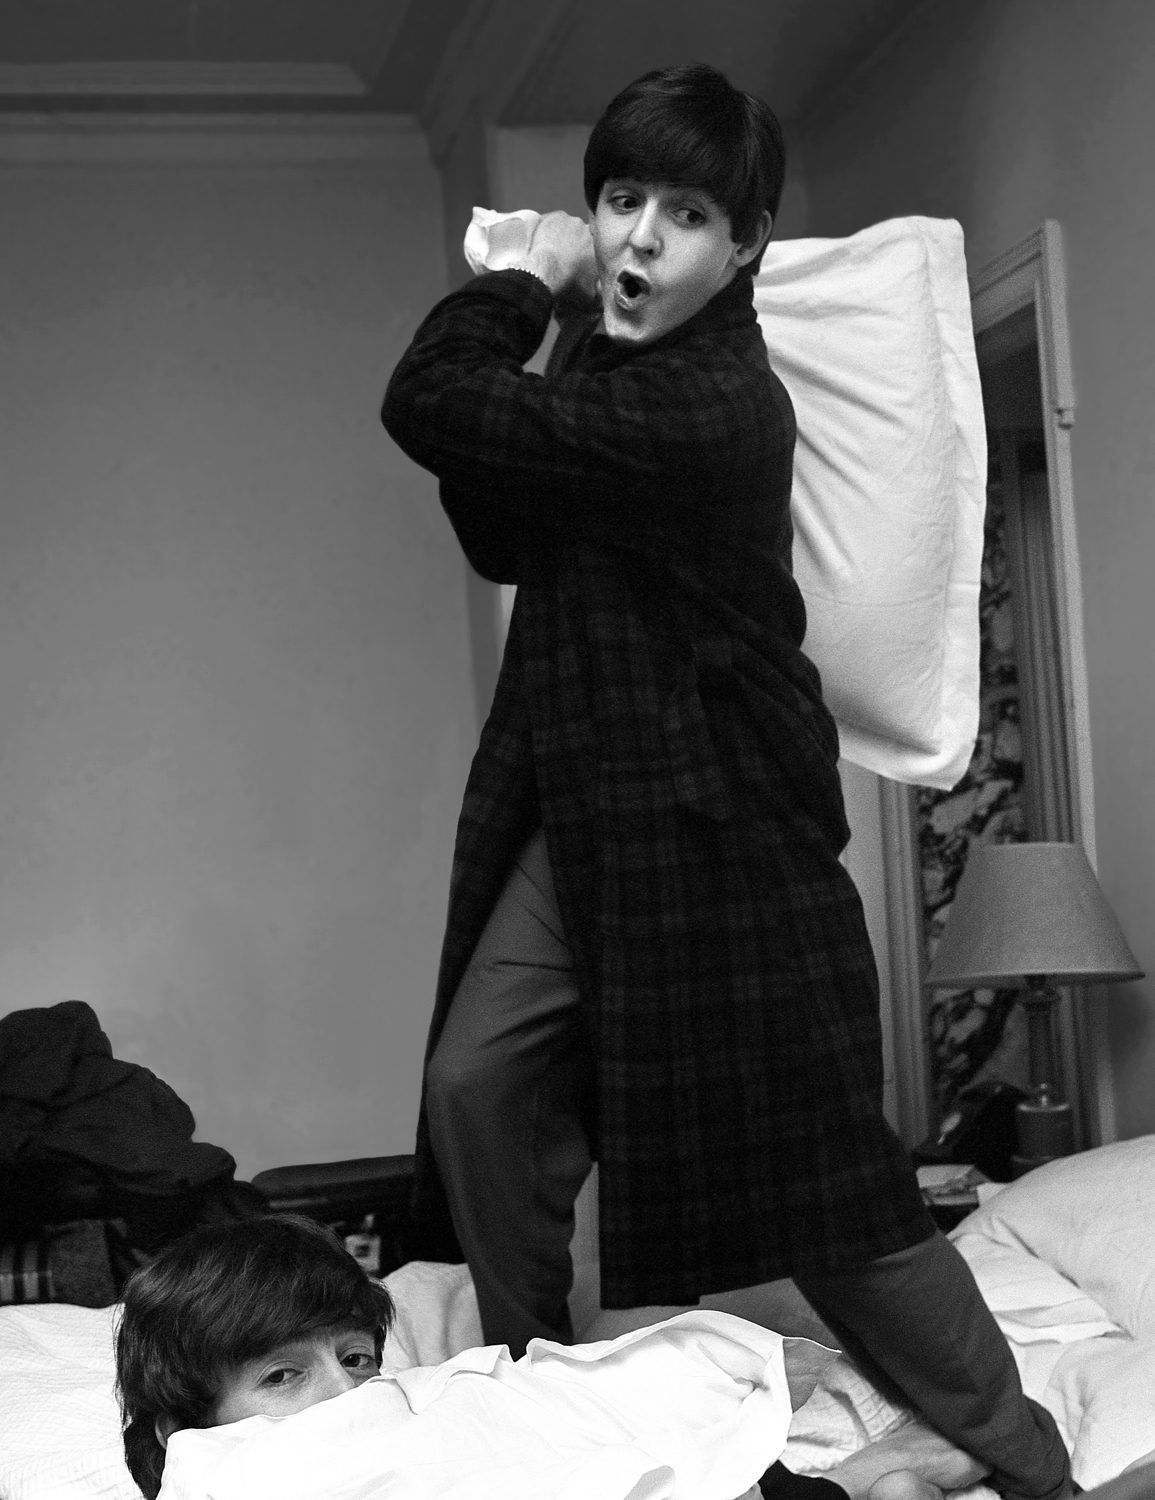 Paul hits John, (Pillow Fight), Paris